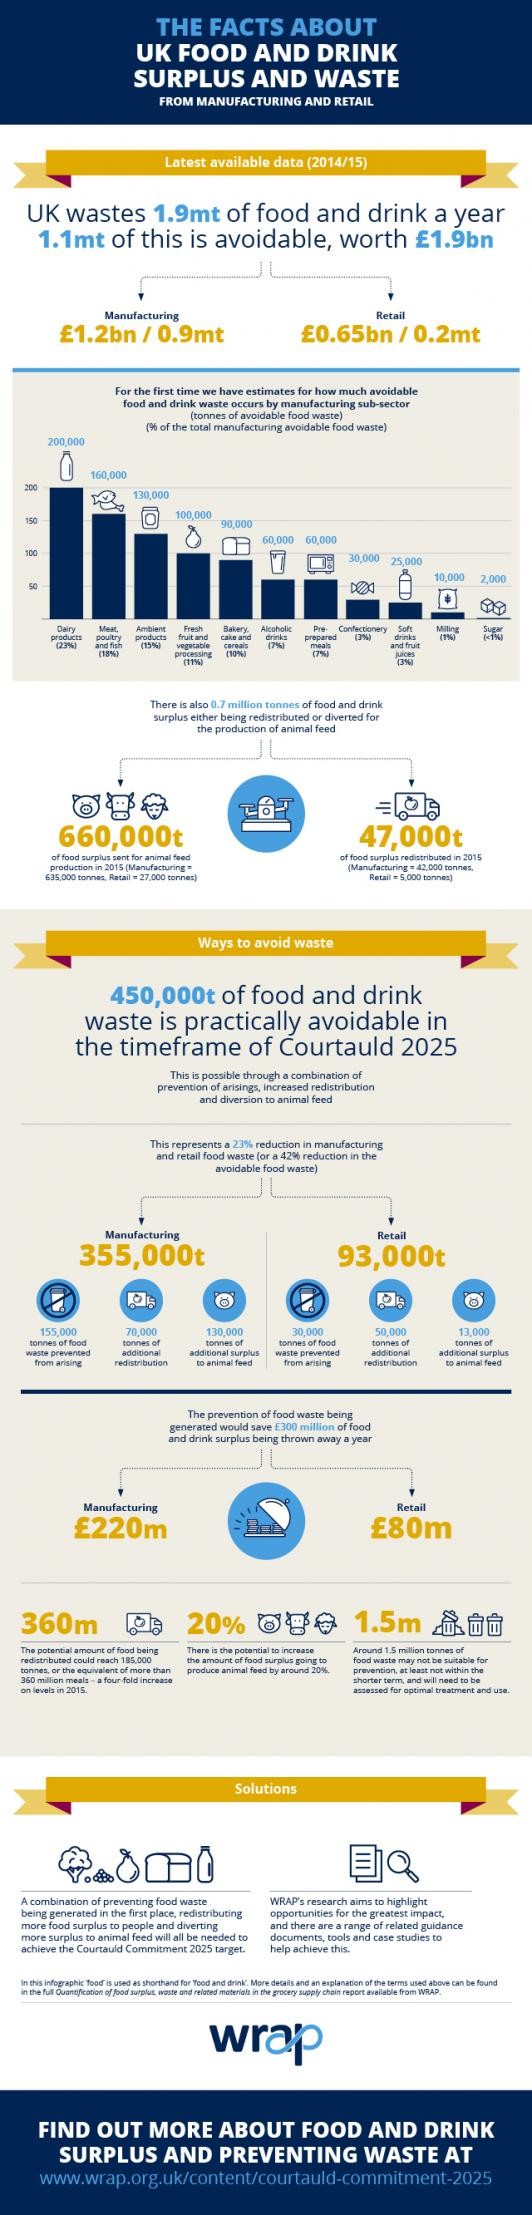 WRAP_Food surplus and waste infographic